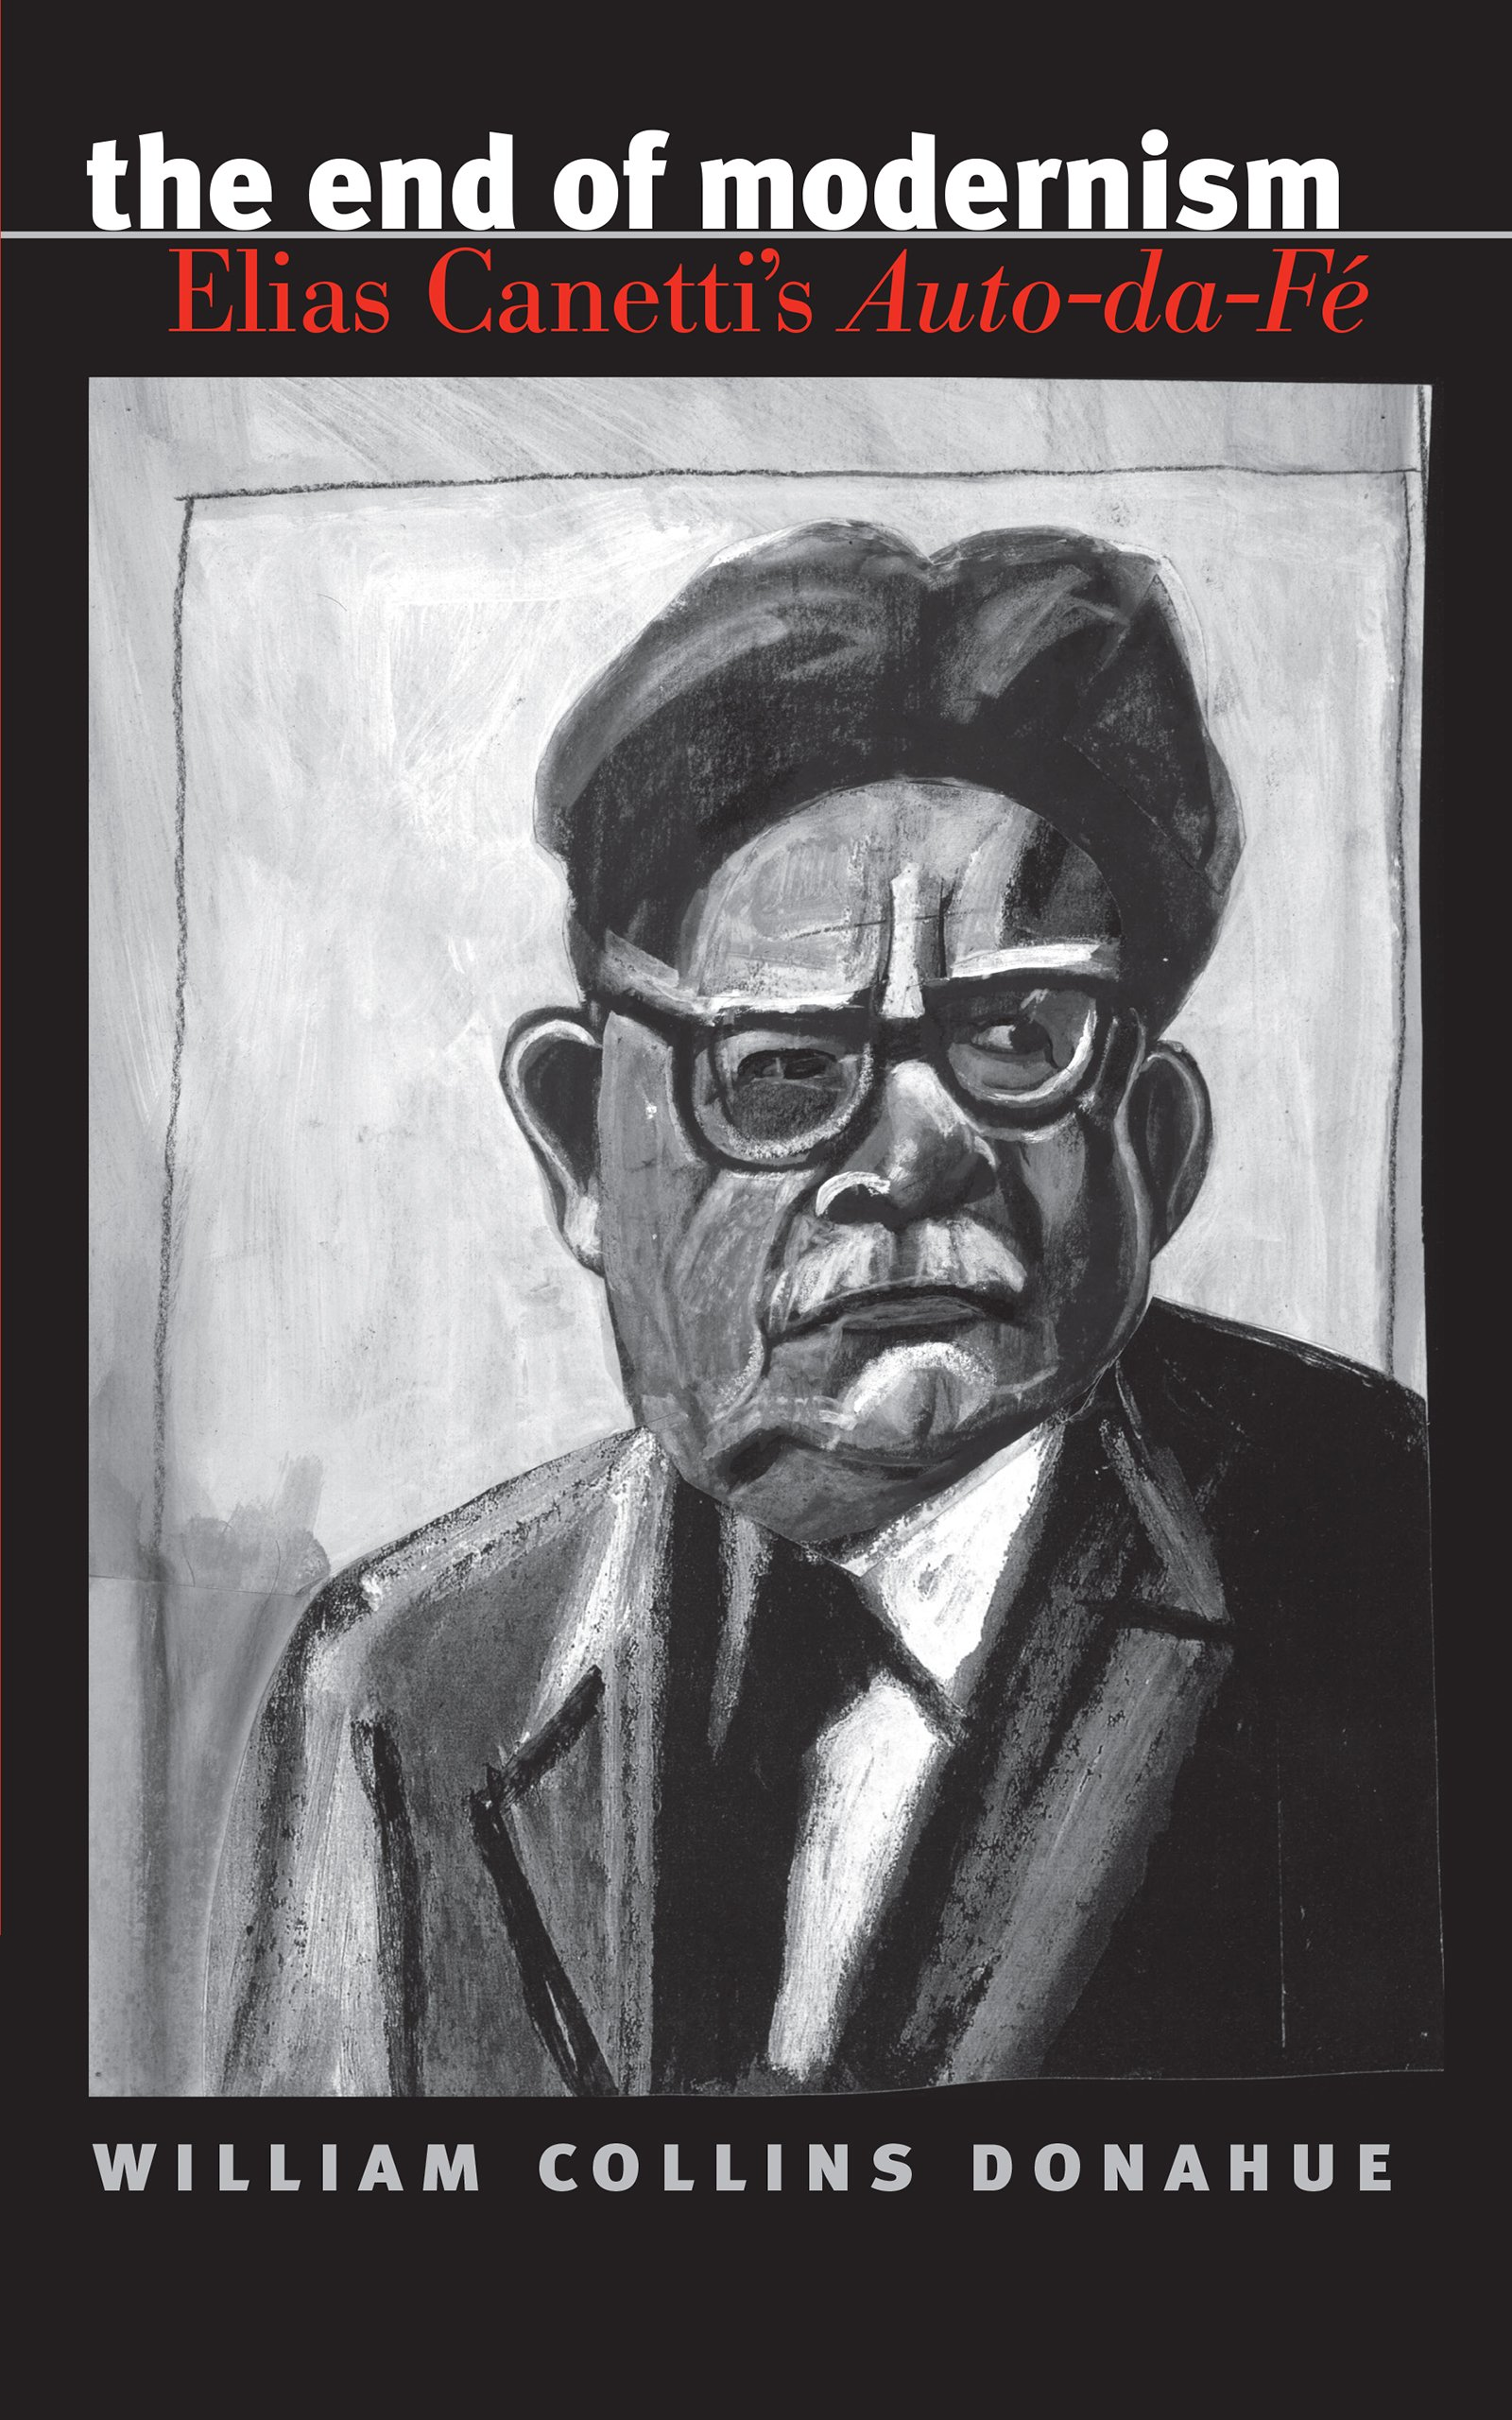 The End of Modernism: Elias Canetti's Auto-da-FÈ